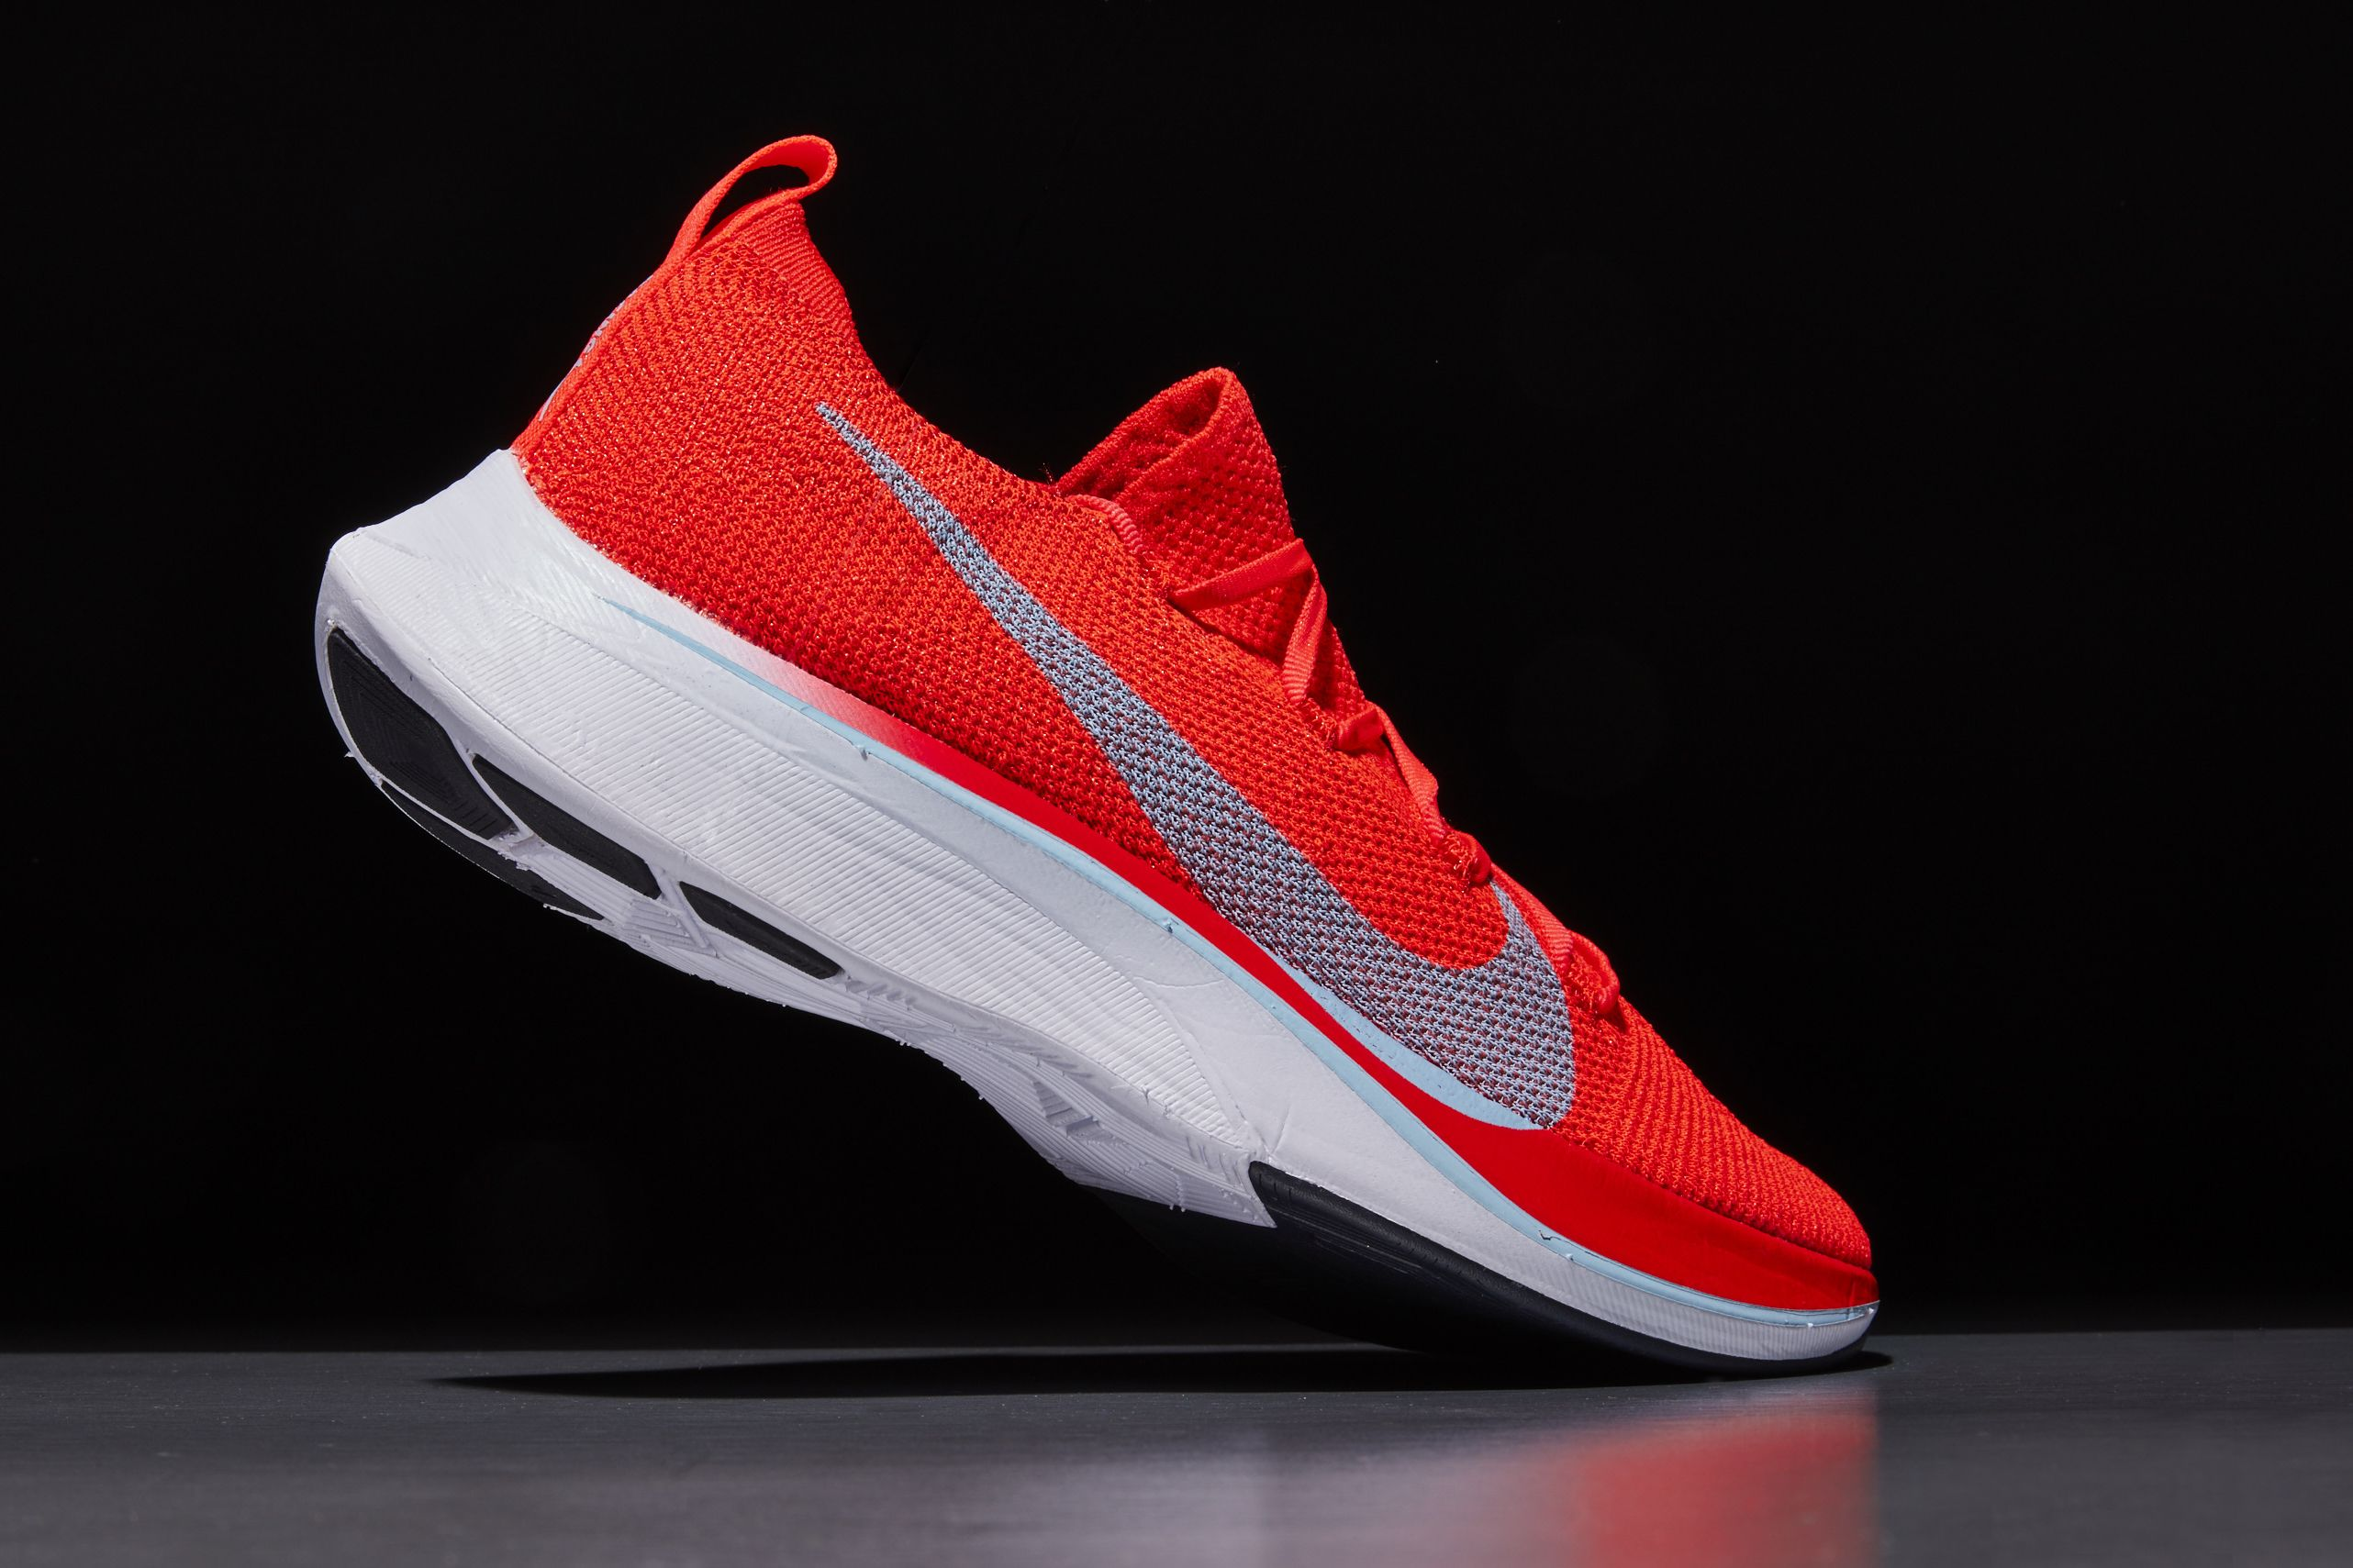 Everything You Wanted to Know About the Biomechanics of the Nike Vaporfly 4% a883aedba2cea